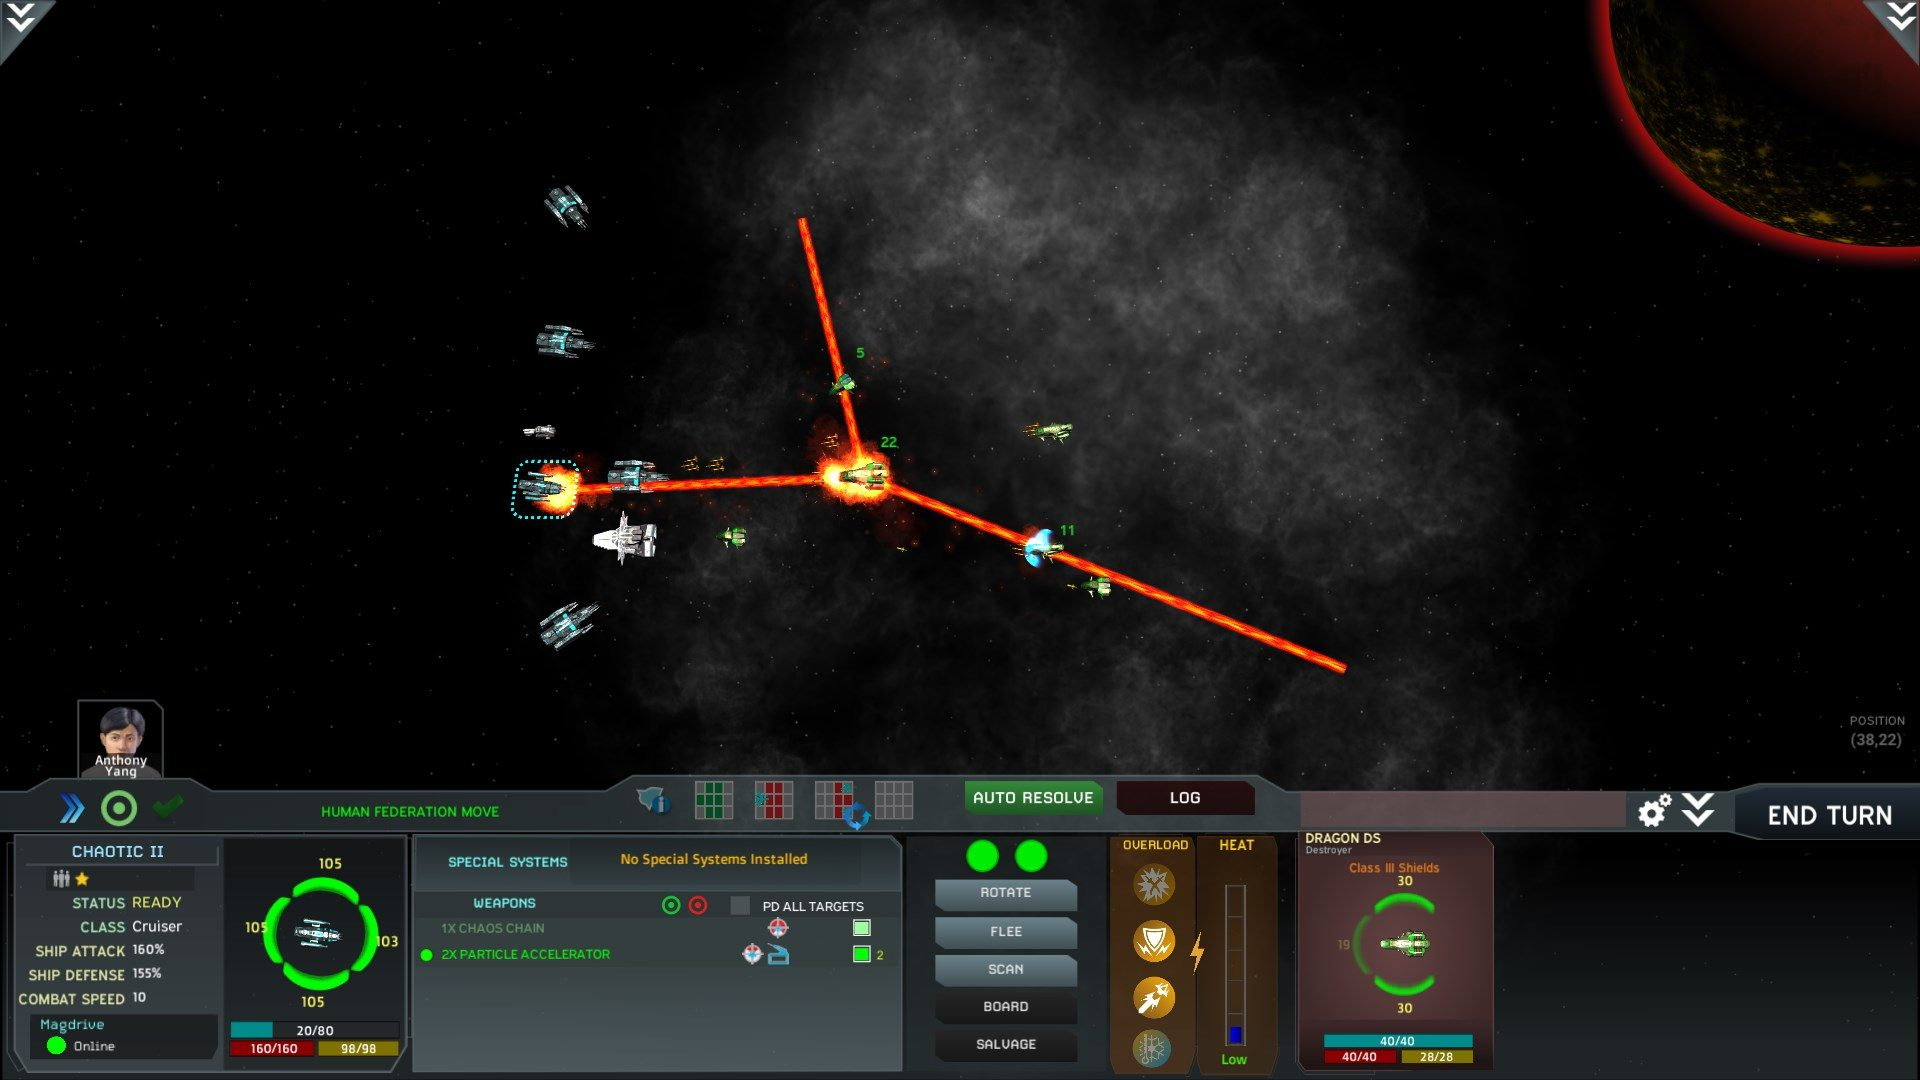 Interstellar space genesis combat